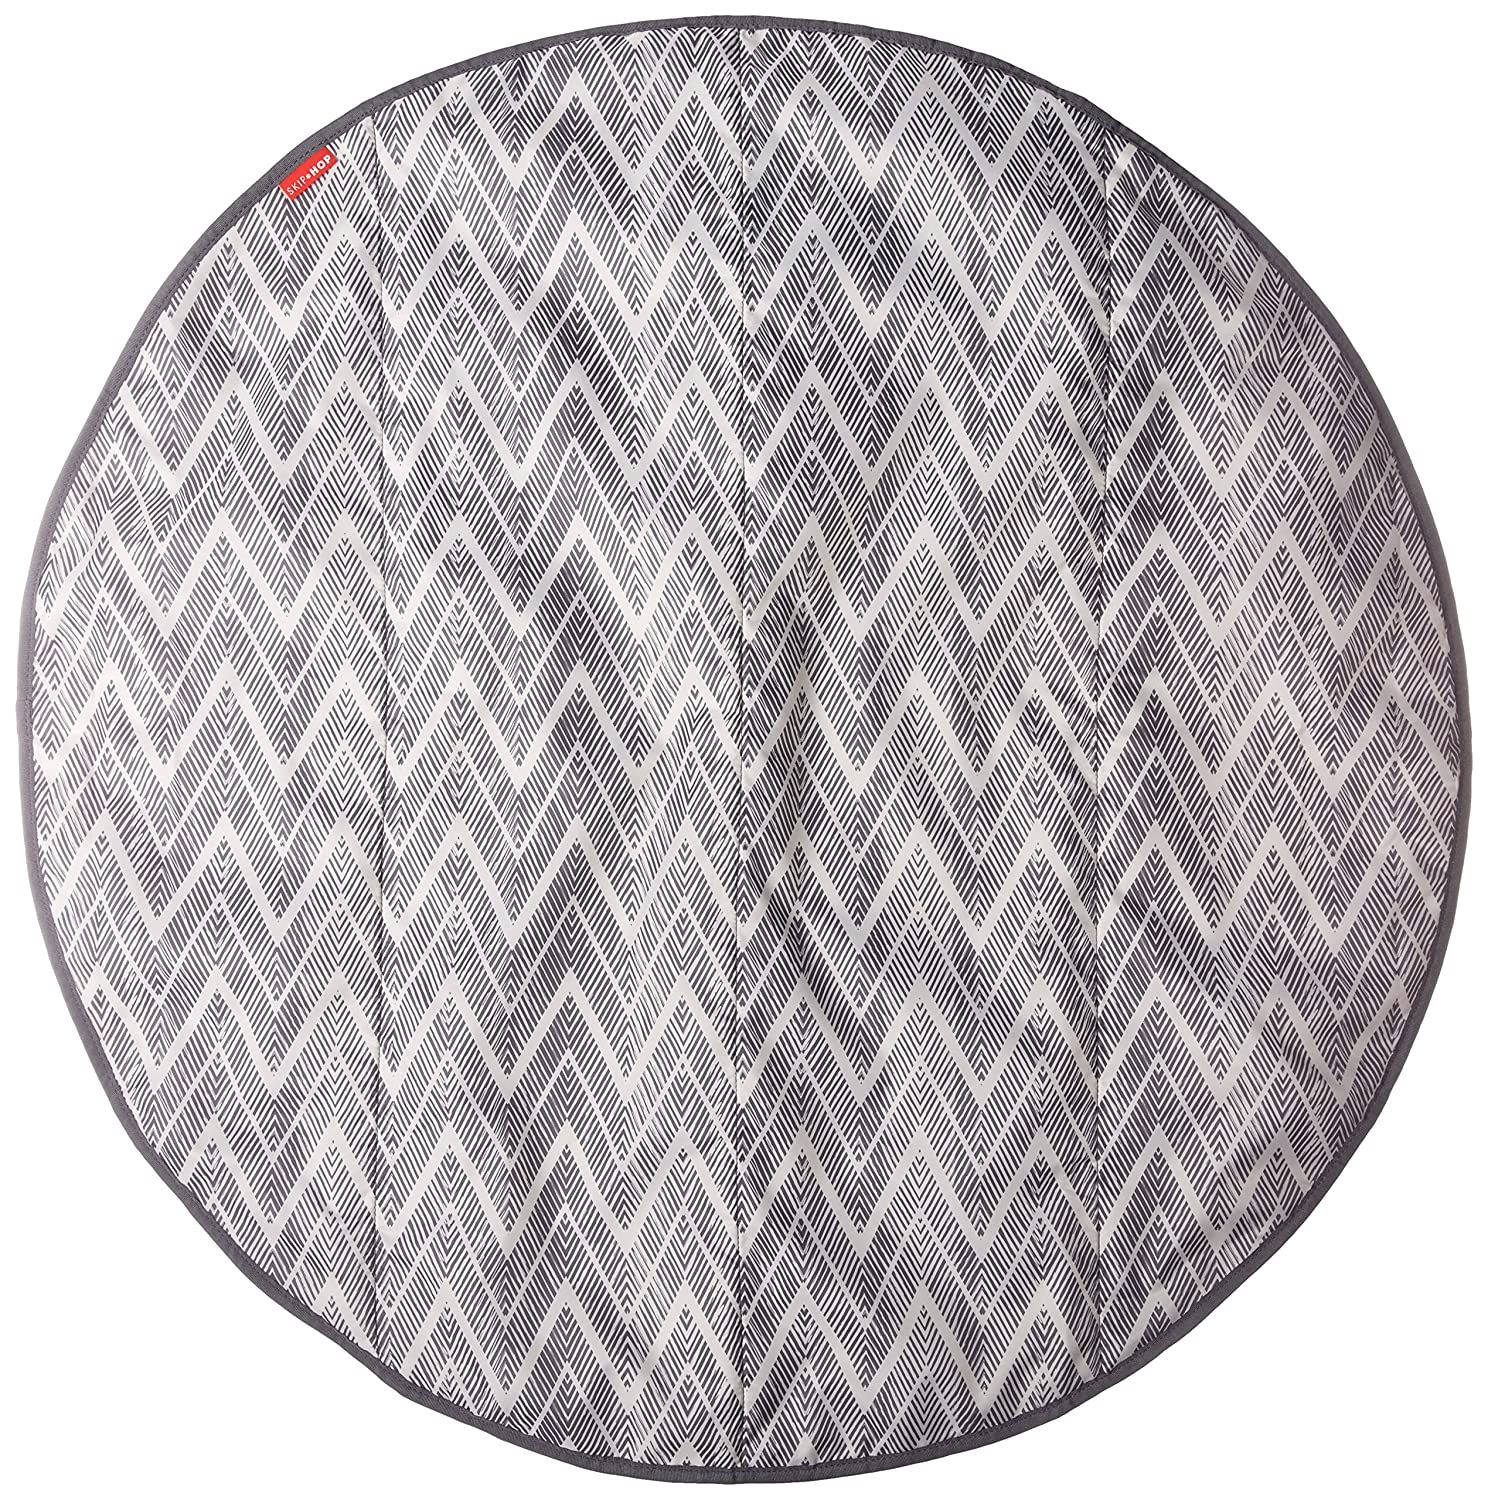 Skip Hop Grab-and-Go Round Trip Travel Mat, Grey Zig Zag 274150